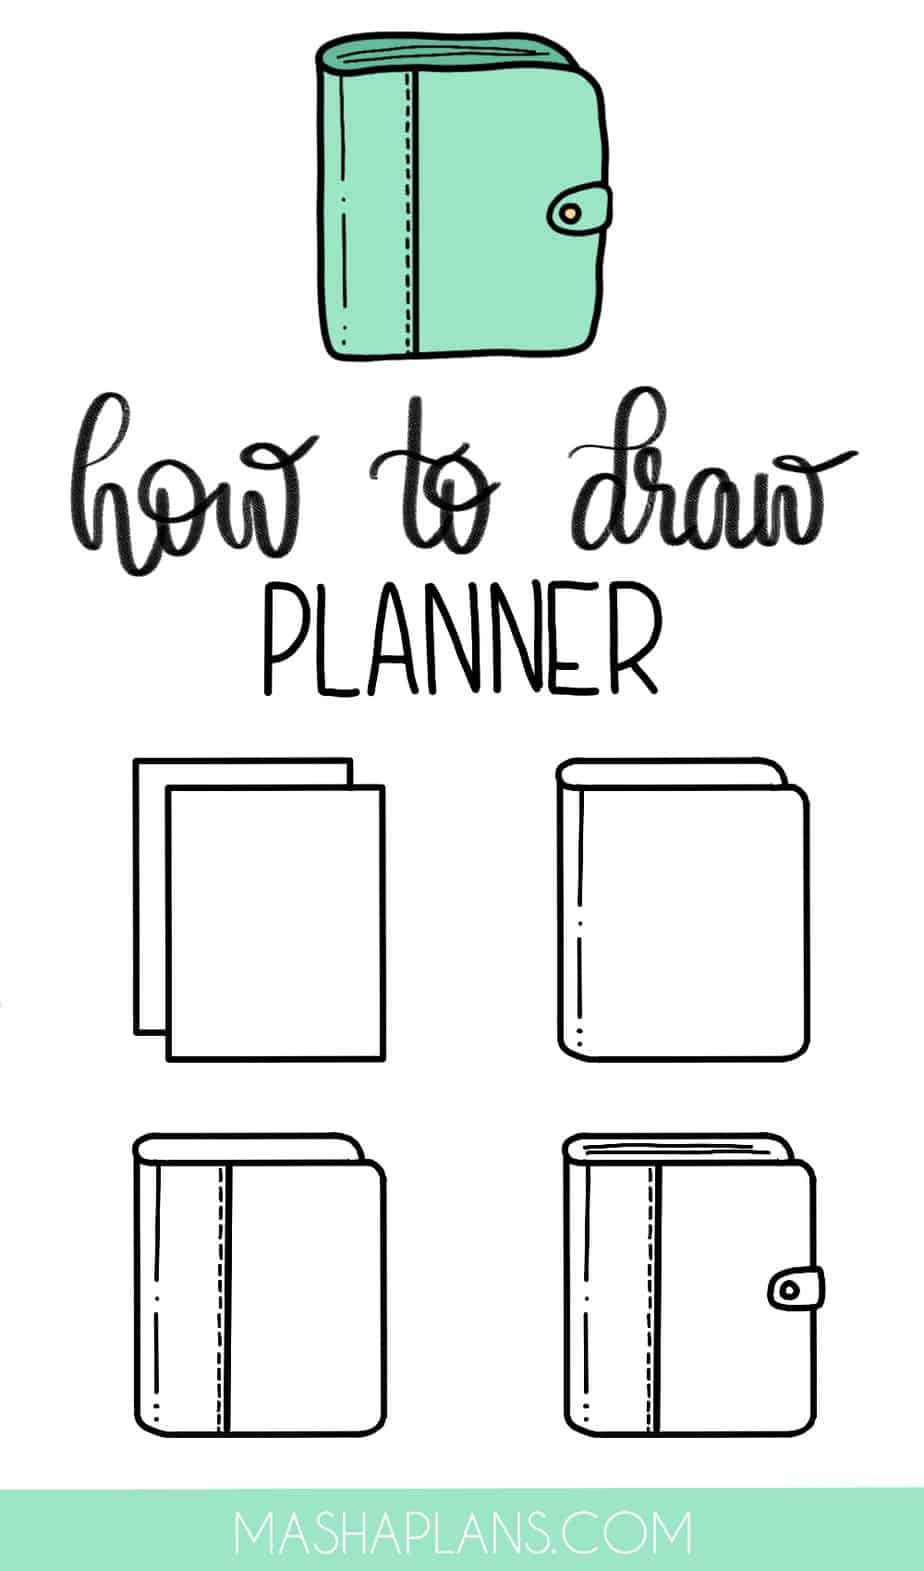 Cute and Easy Stationery Bullet Journal Doodles, Planner | Masha Plans